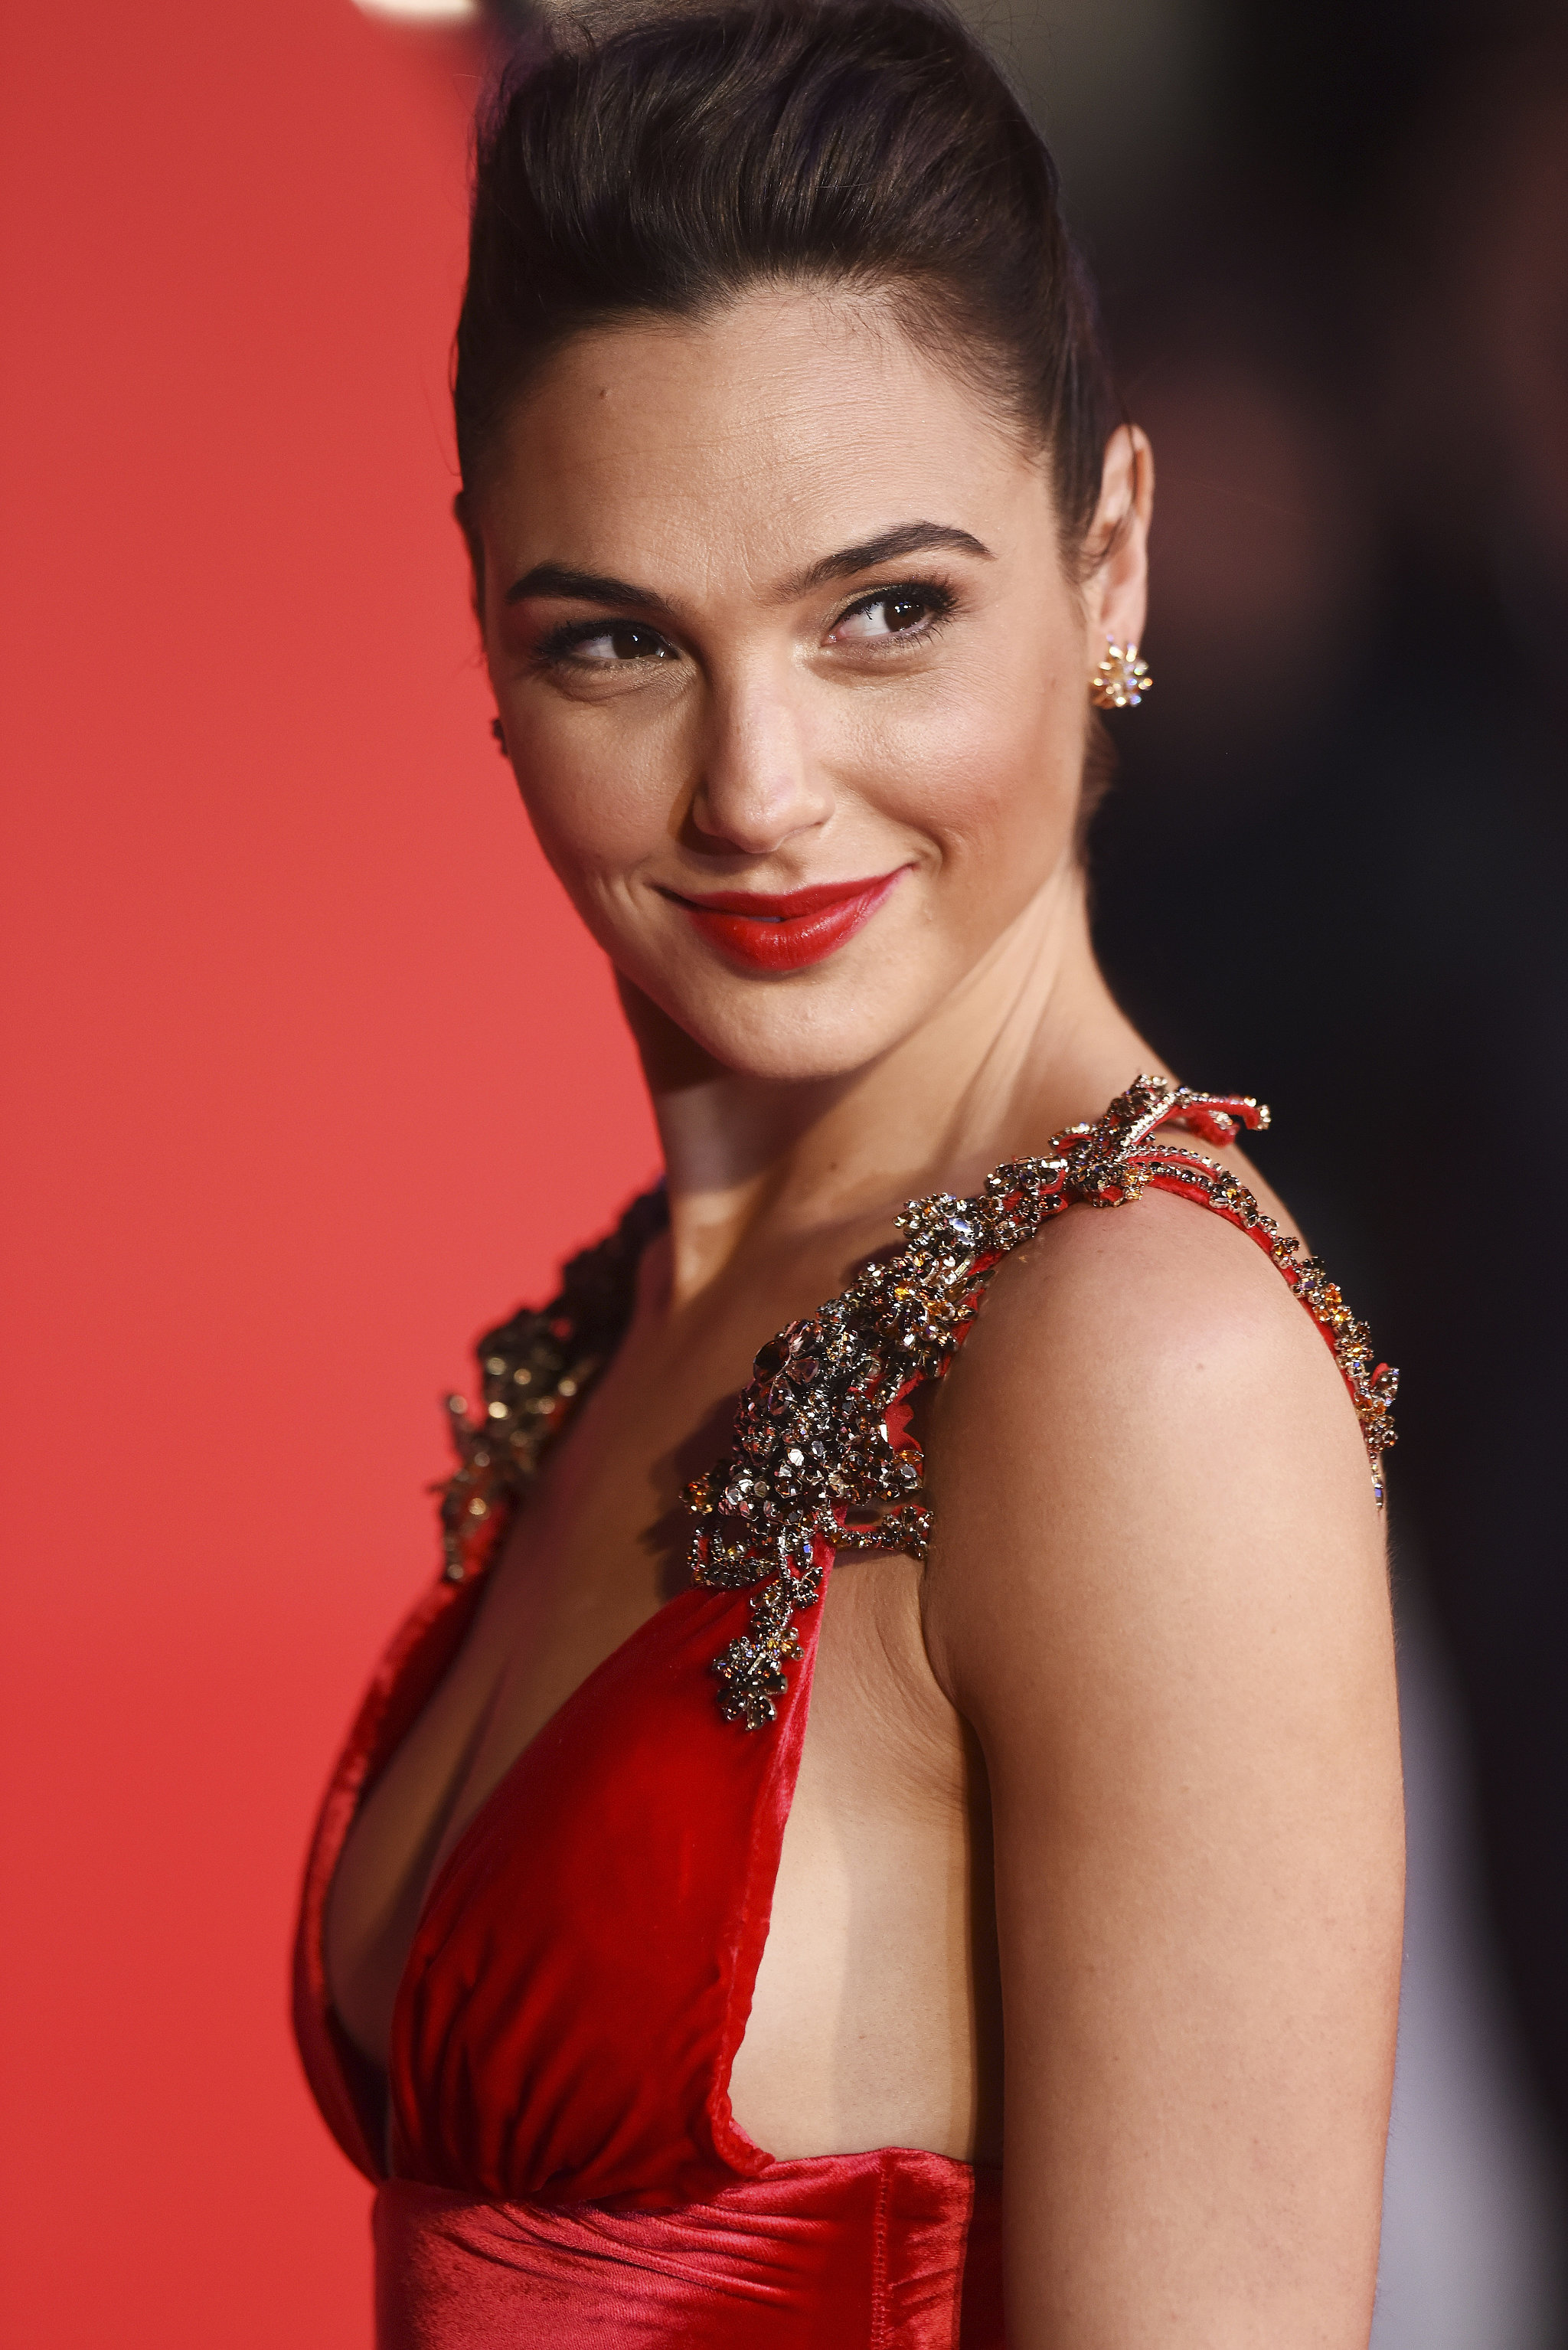 Gal Gadot >> Gal Gadot Looks Straight Up Like Wonder Woman on This Red ...